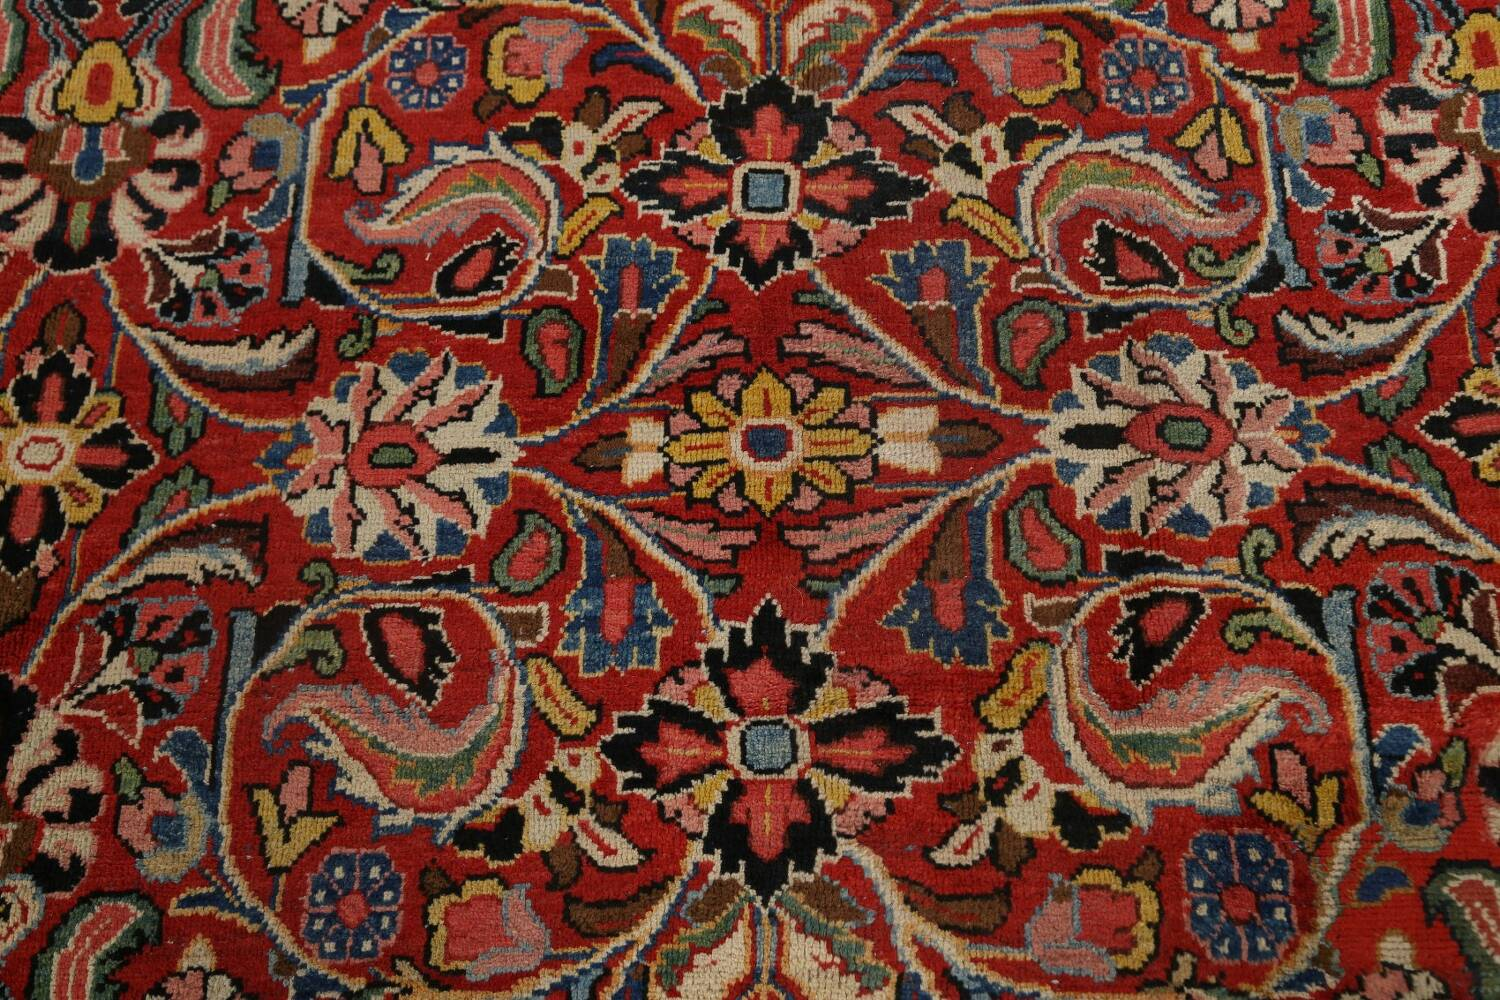 Antique Vegetable Dye Sultanabad Persian Area Rug 10x14 image 12